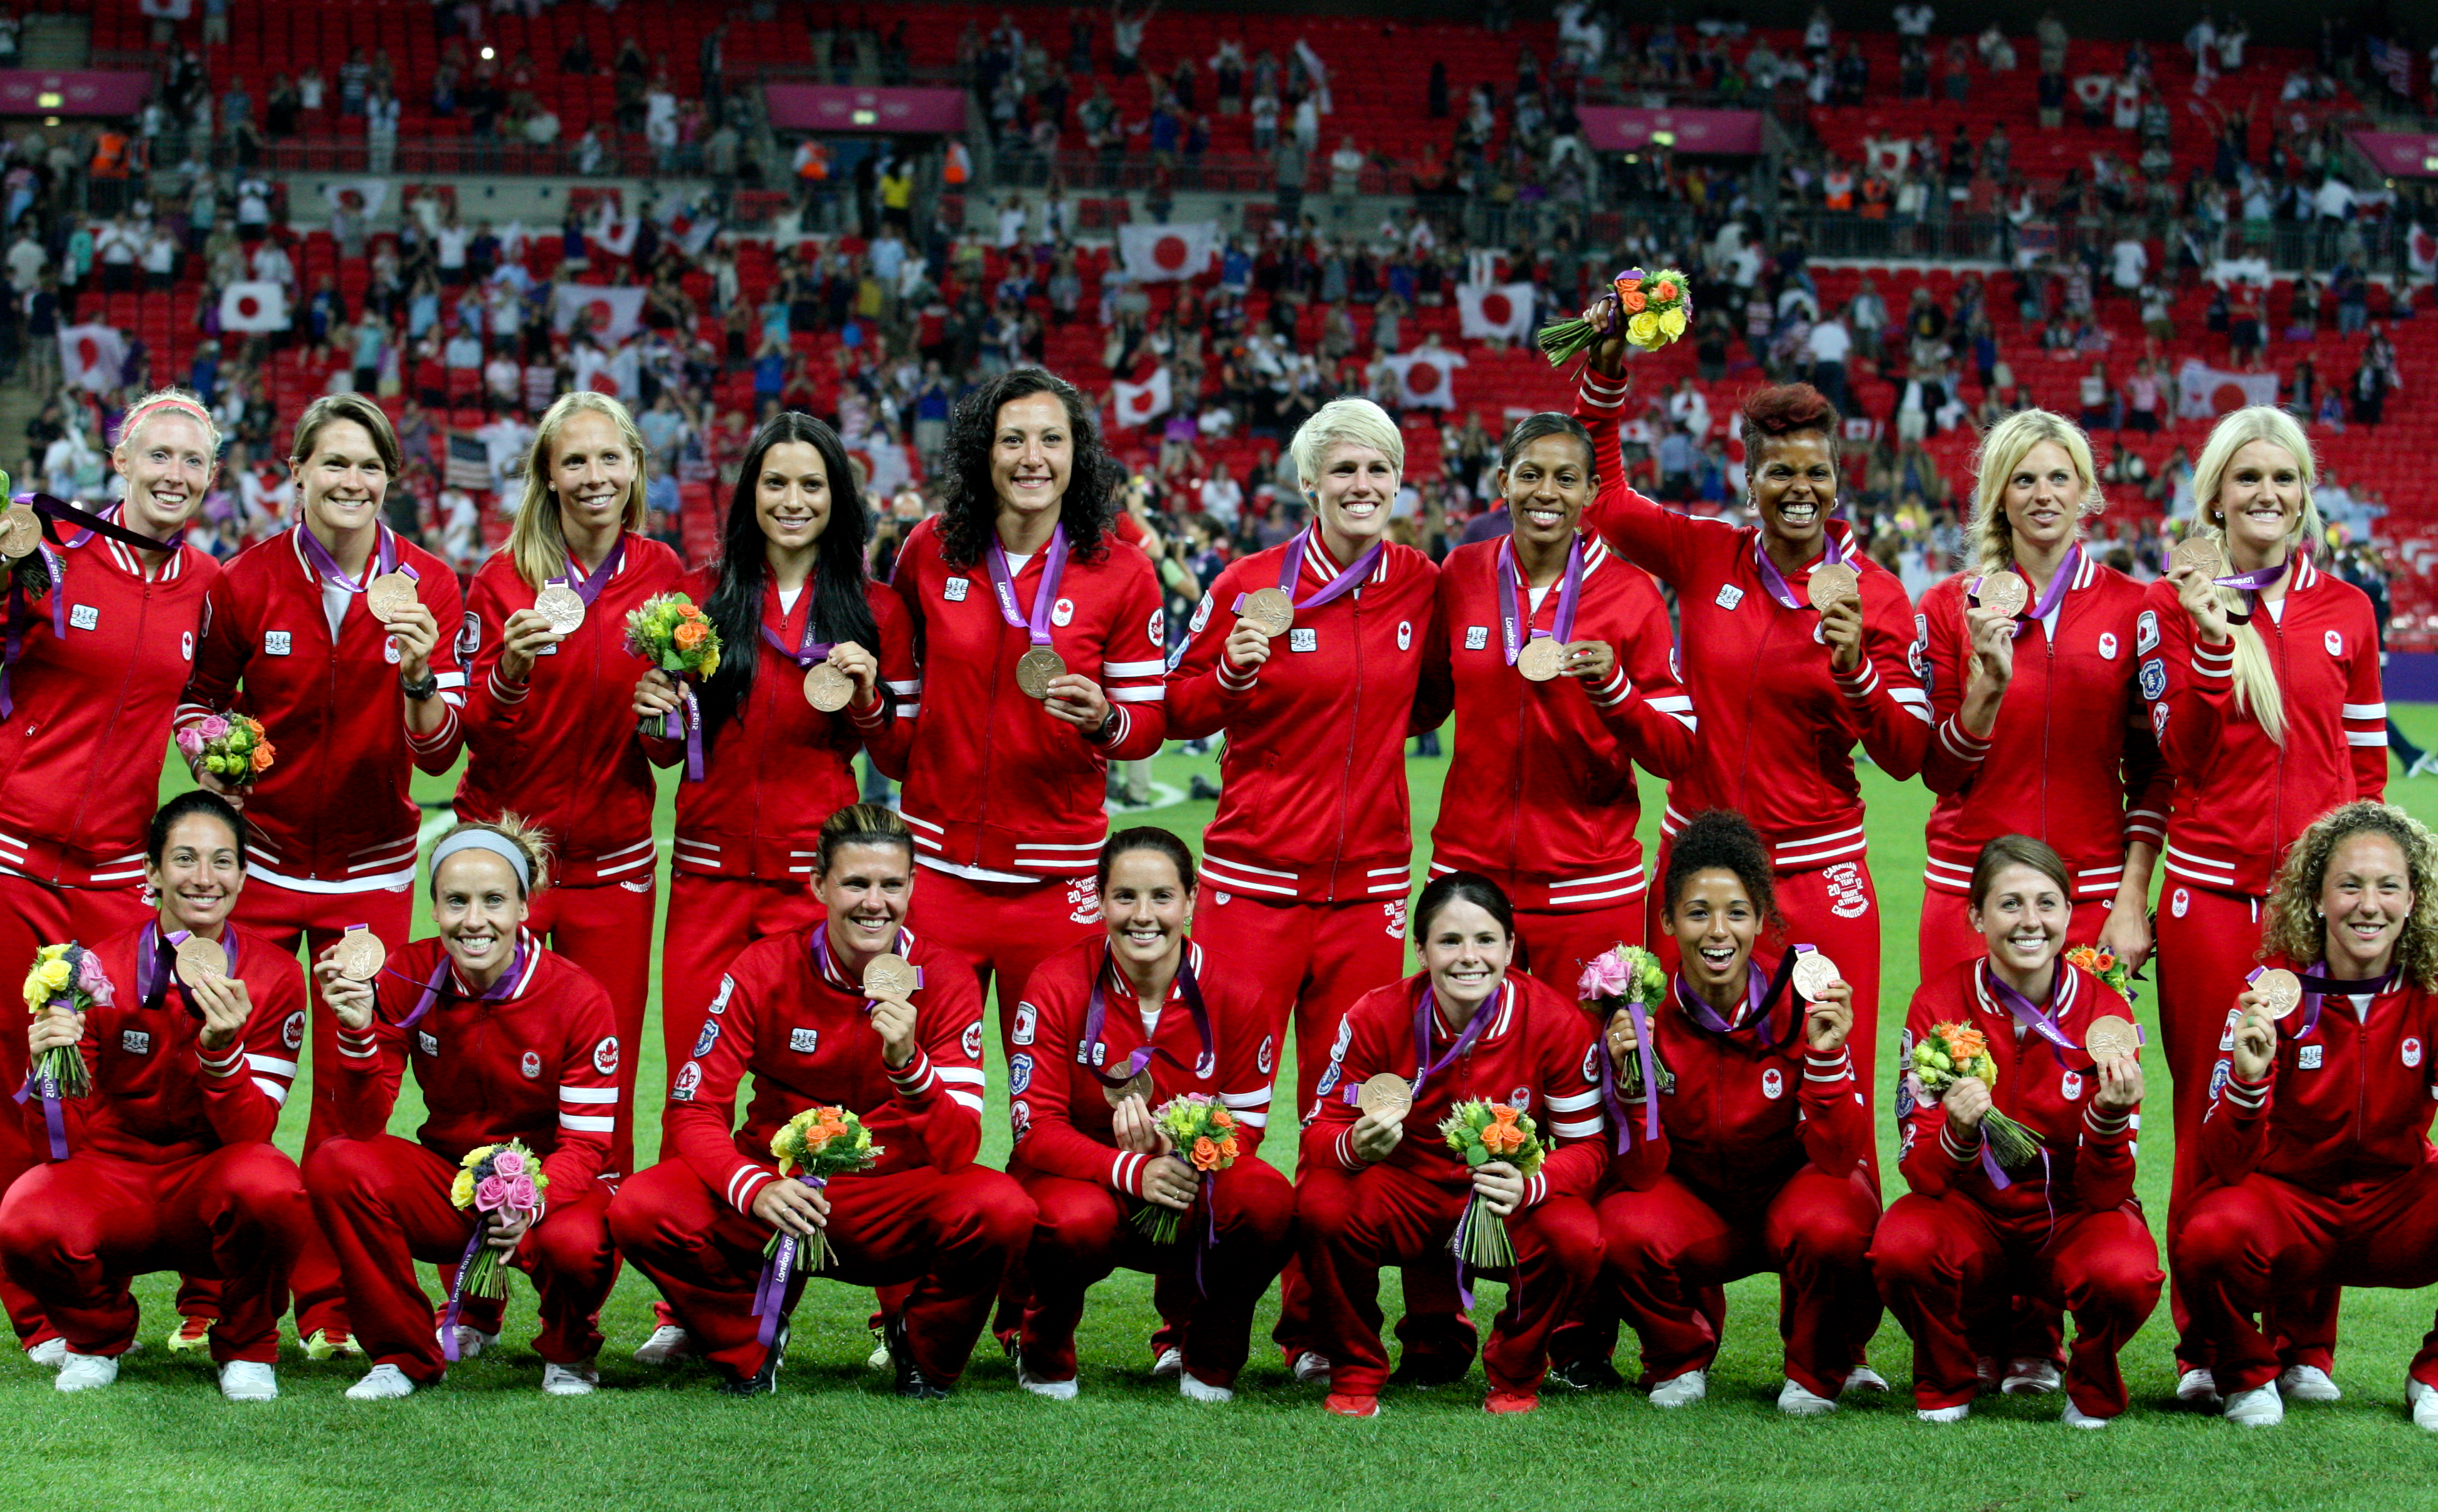 Canada's women's football team receive their bronze medals at Wembly Stadium at the 2012 London Olympics, Thursday, Aug. 9, 2012. THE CANADIAN PRESS/HO, COC - Mike Ridewood